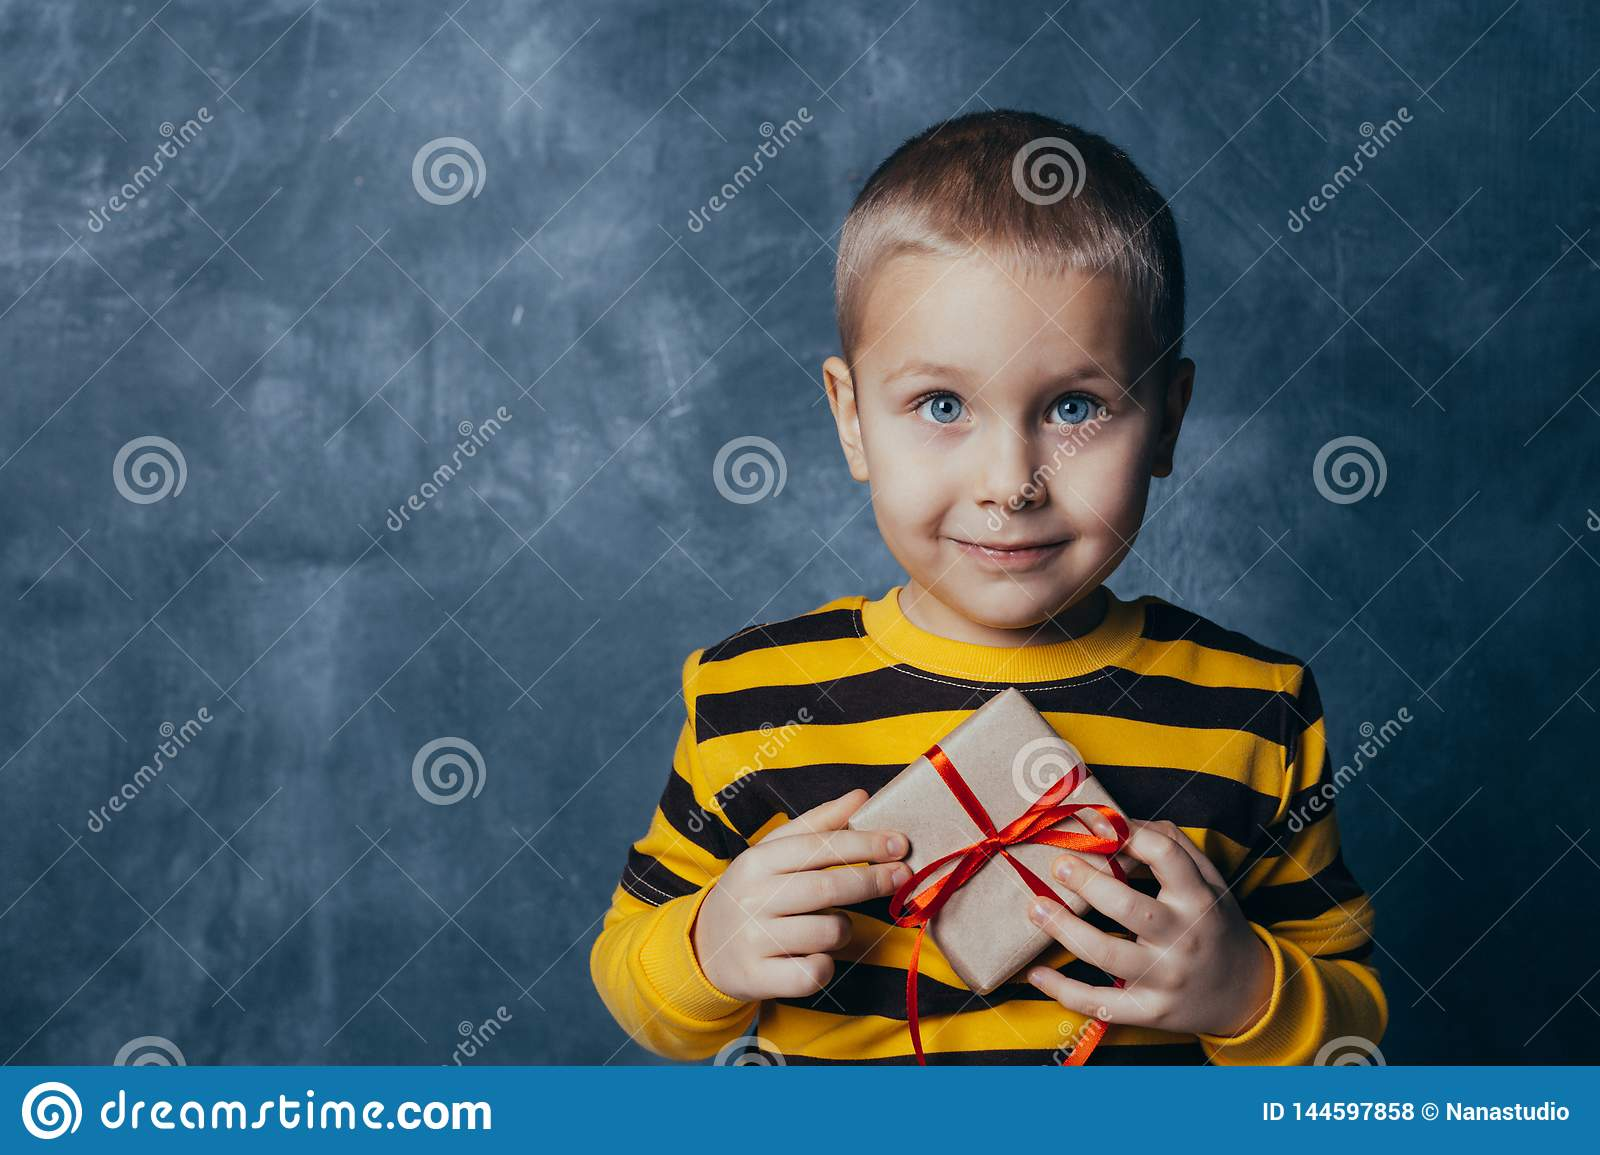 A young emotional boy holds in his hands a gift with a red bow standing on a blue studio background